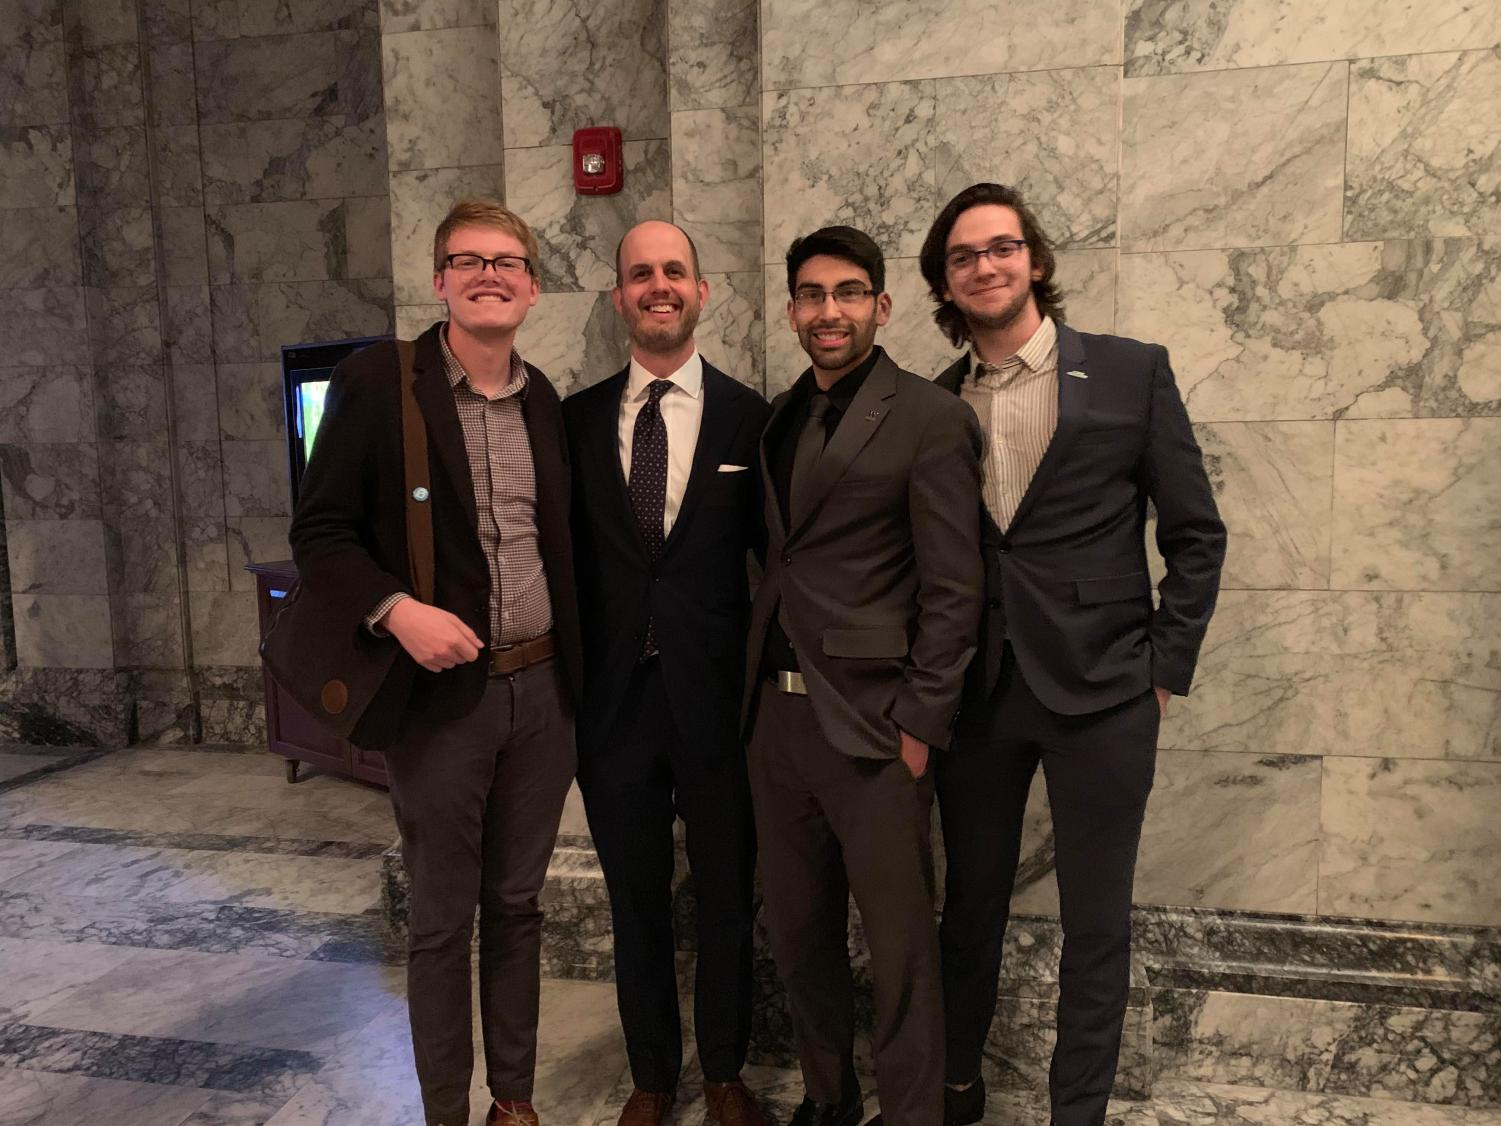 Representative Drew Hansen (center left) who wrote HB 2158, with some of the student legislative liaisons who helped him get the bill passed (left to right) Zack Turner (CWU), Adan Espino (University of Wash- ington), Henry Pollet (Webster Washington University).